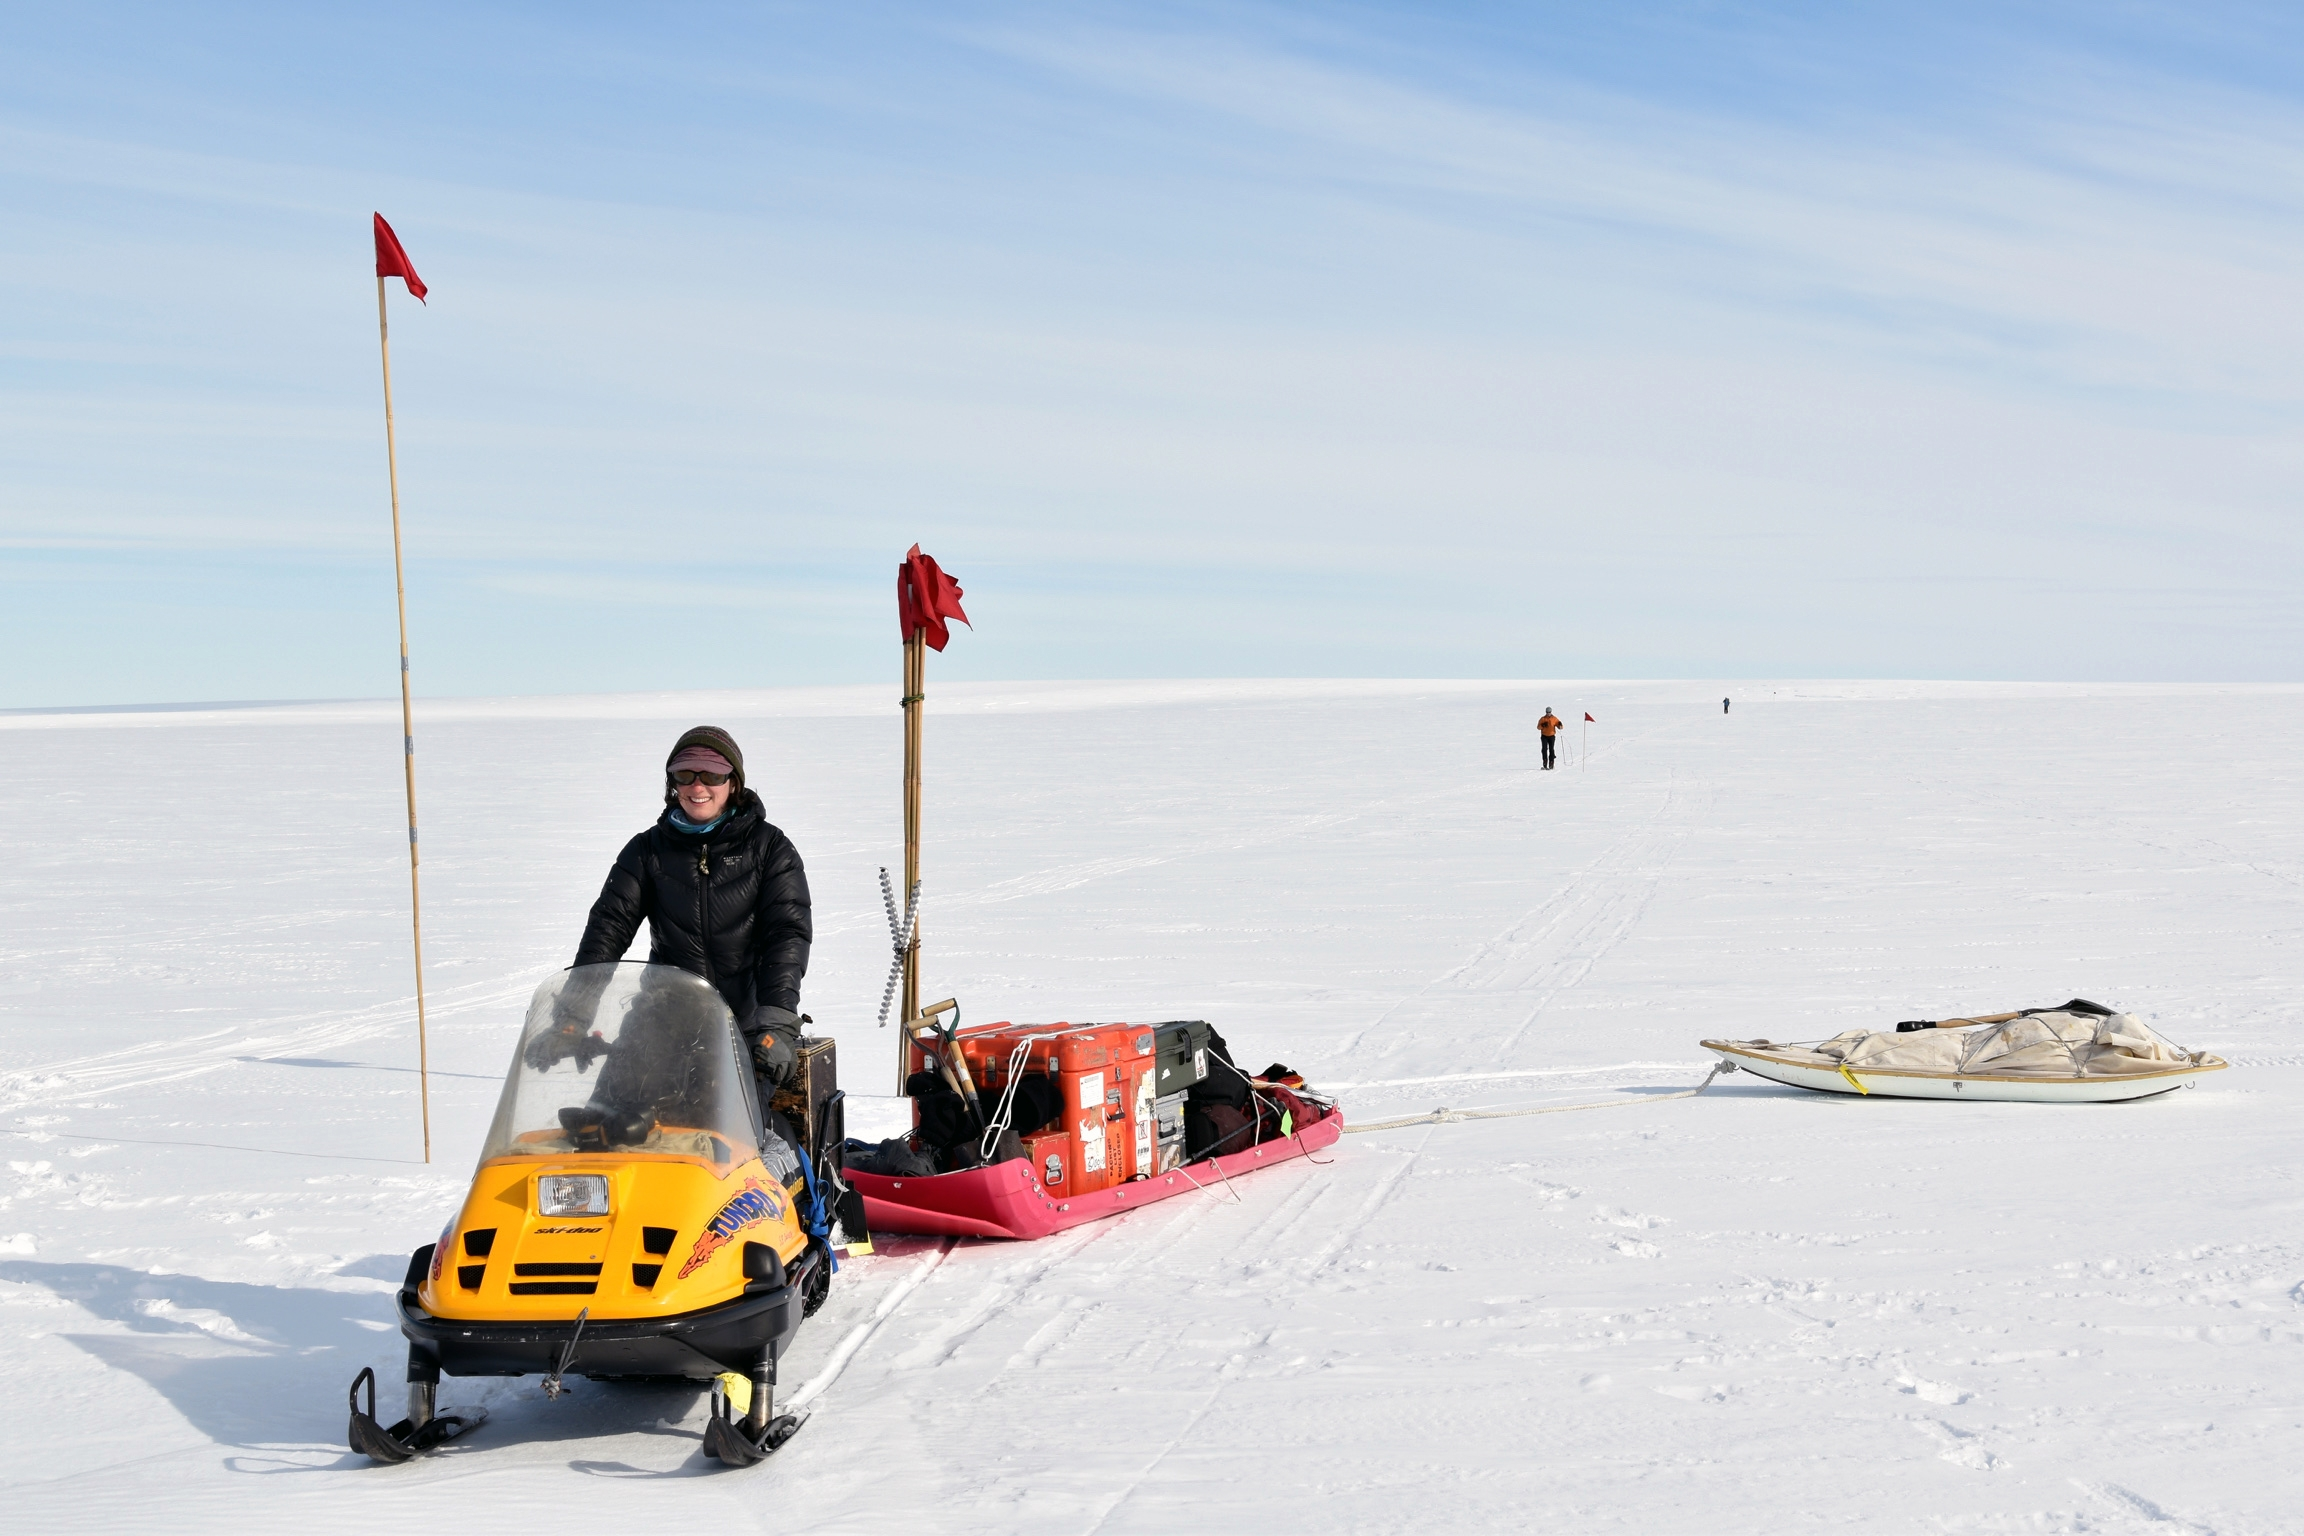 A woman steers a snowmobile towing equipment across the icy landscape.